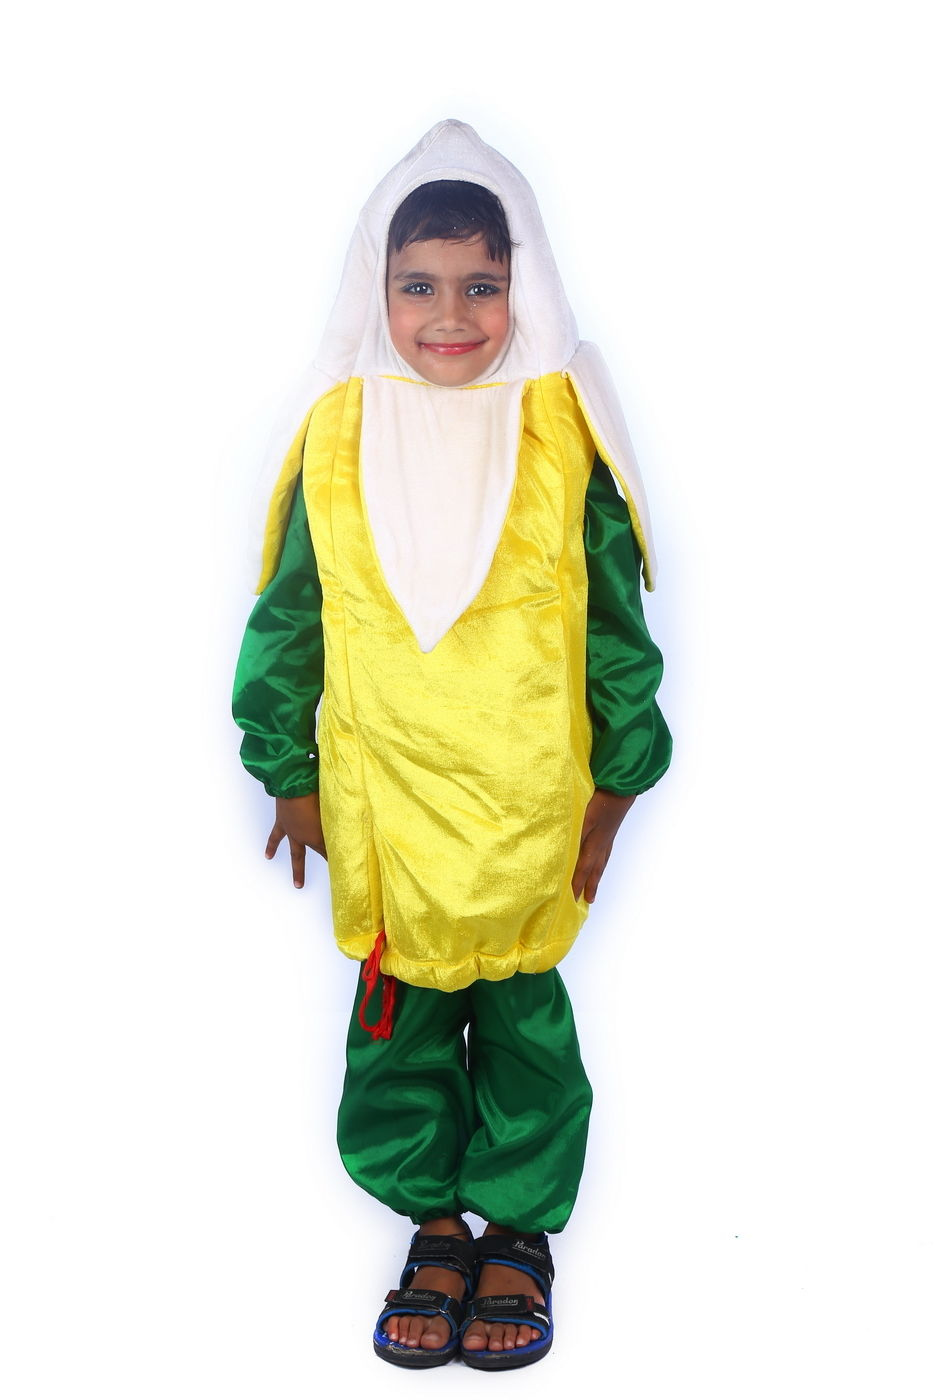 banana healthy fruit fancy dress cosplay party halloween costume for kids unisexchina - Banana Costume Halloween